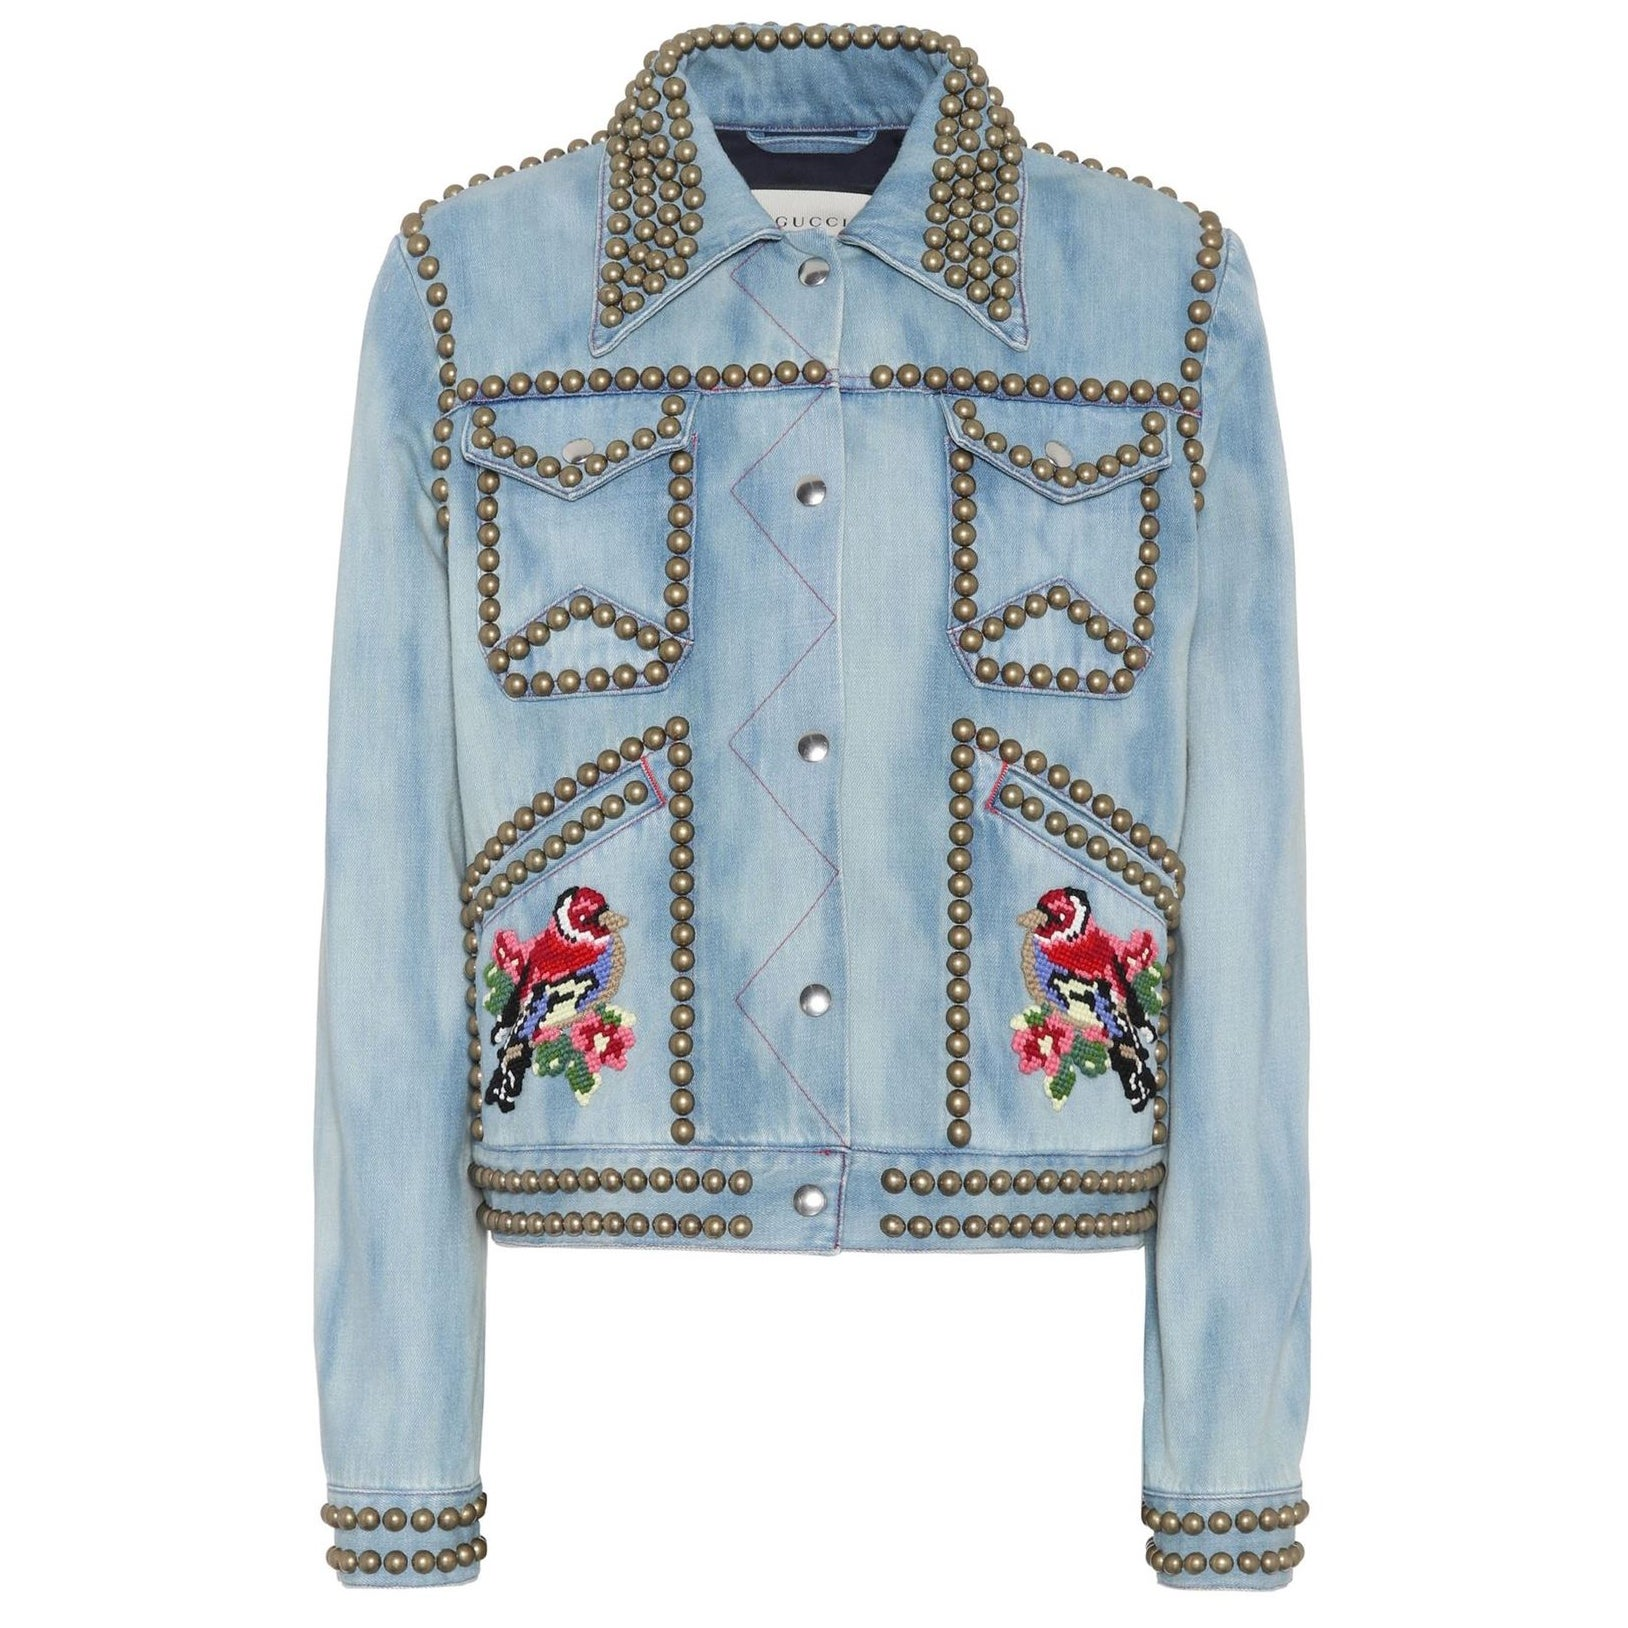 Gucci Embroidered Studded Denim Jacket